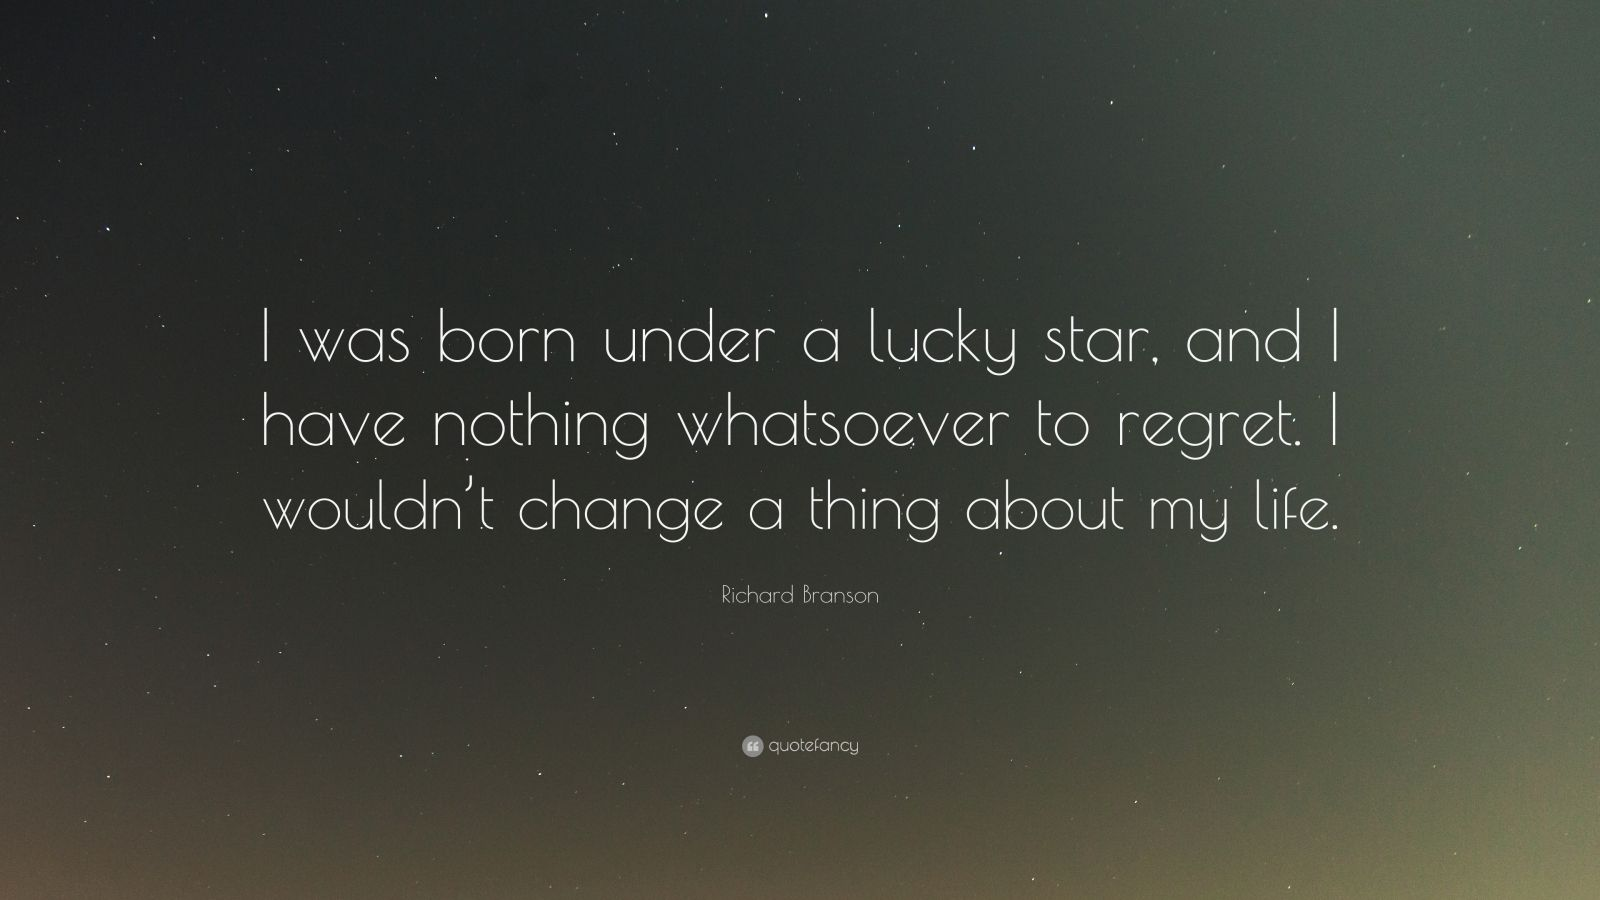 """Richard Branson Quote: """"I was born under a lucky star, and I have nothing whatsoever to regret. I wouldn't change a thing about my life."""""""